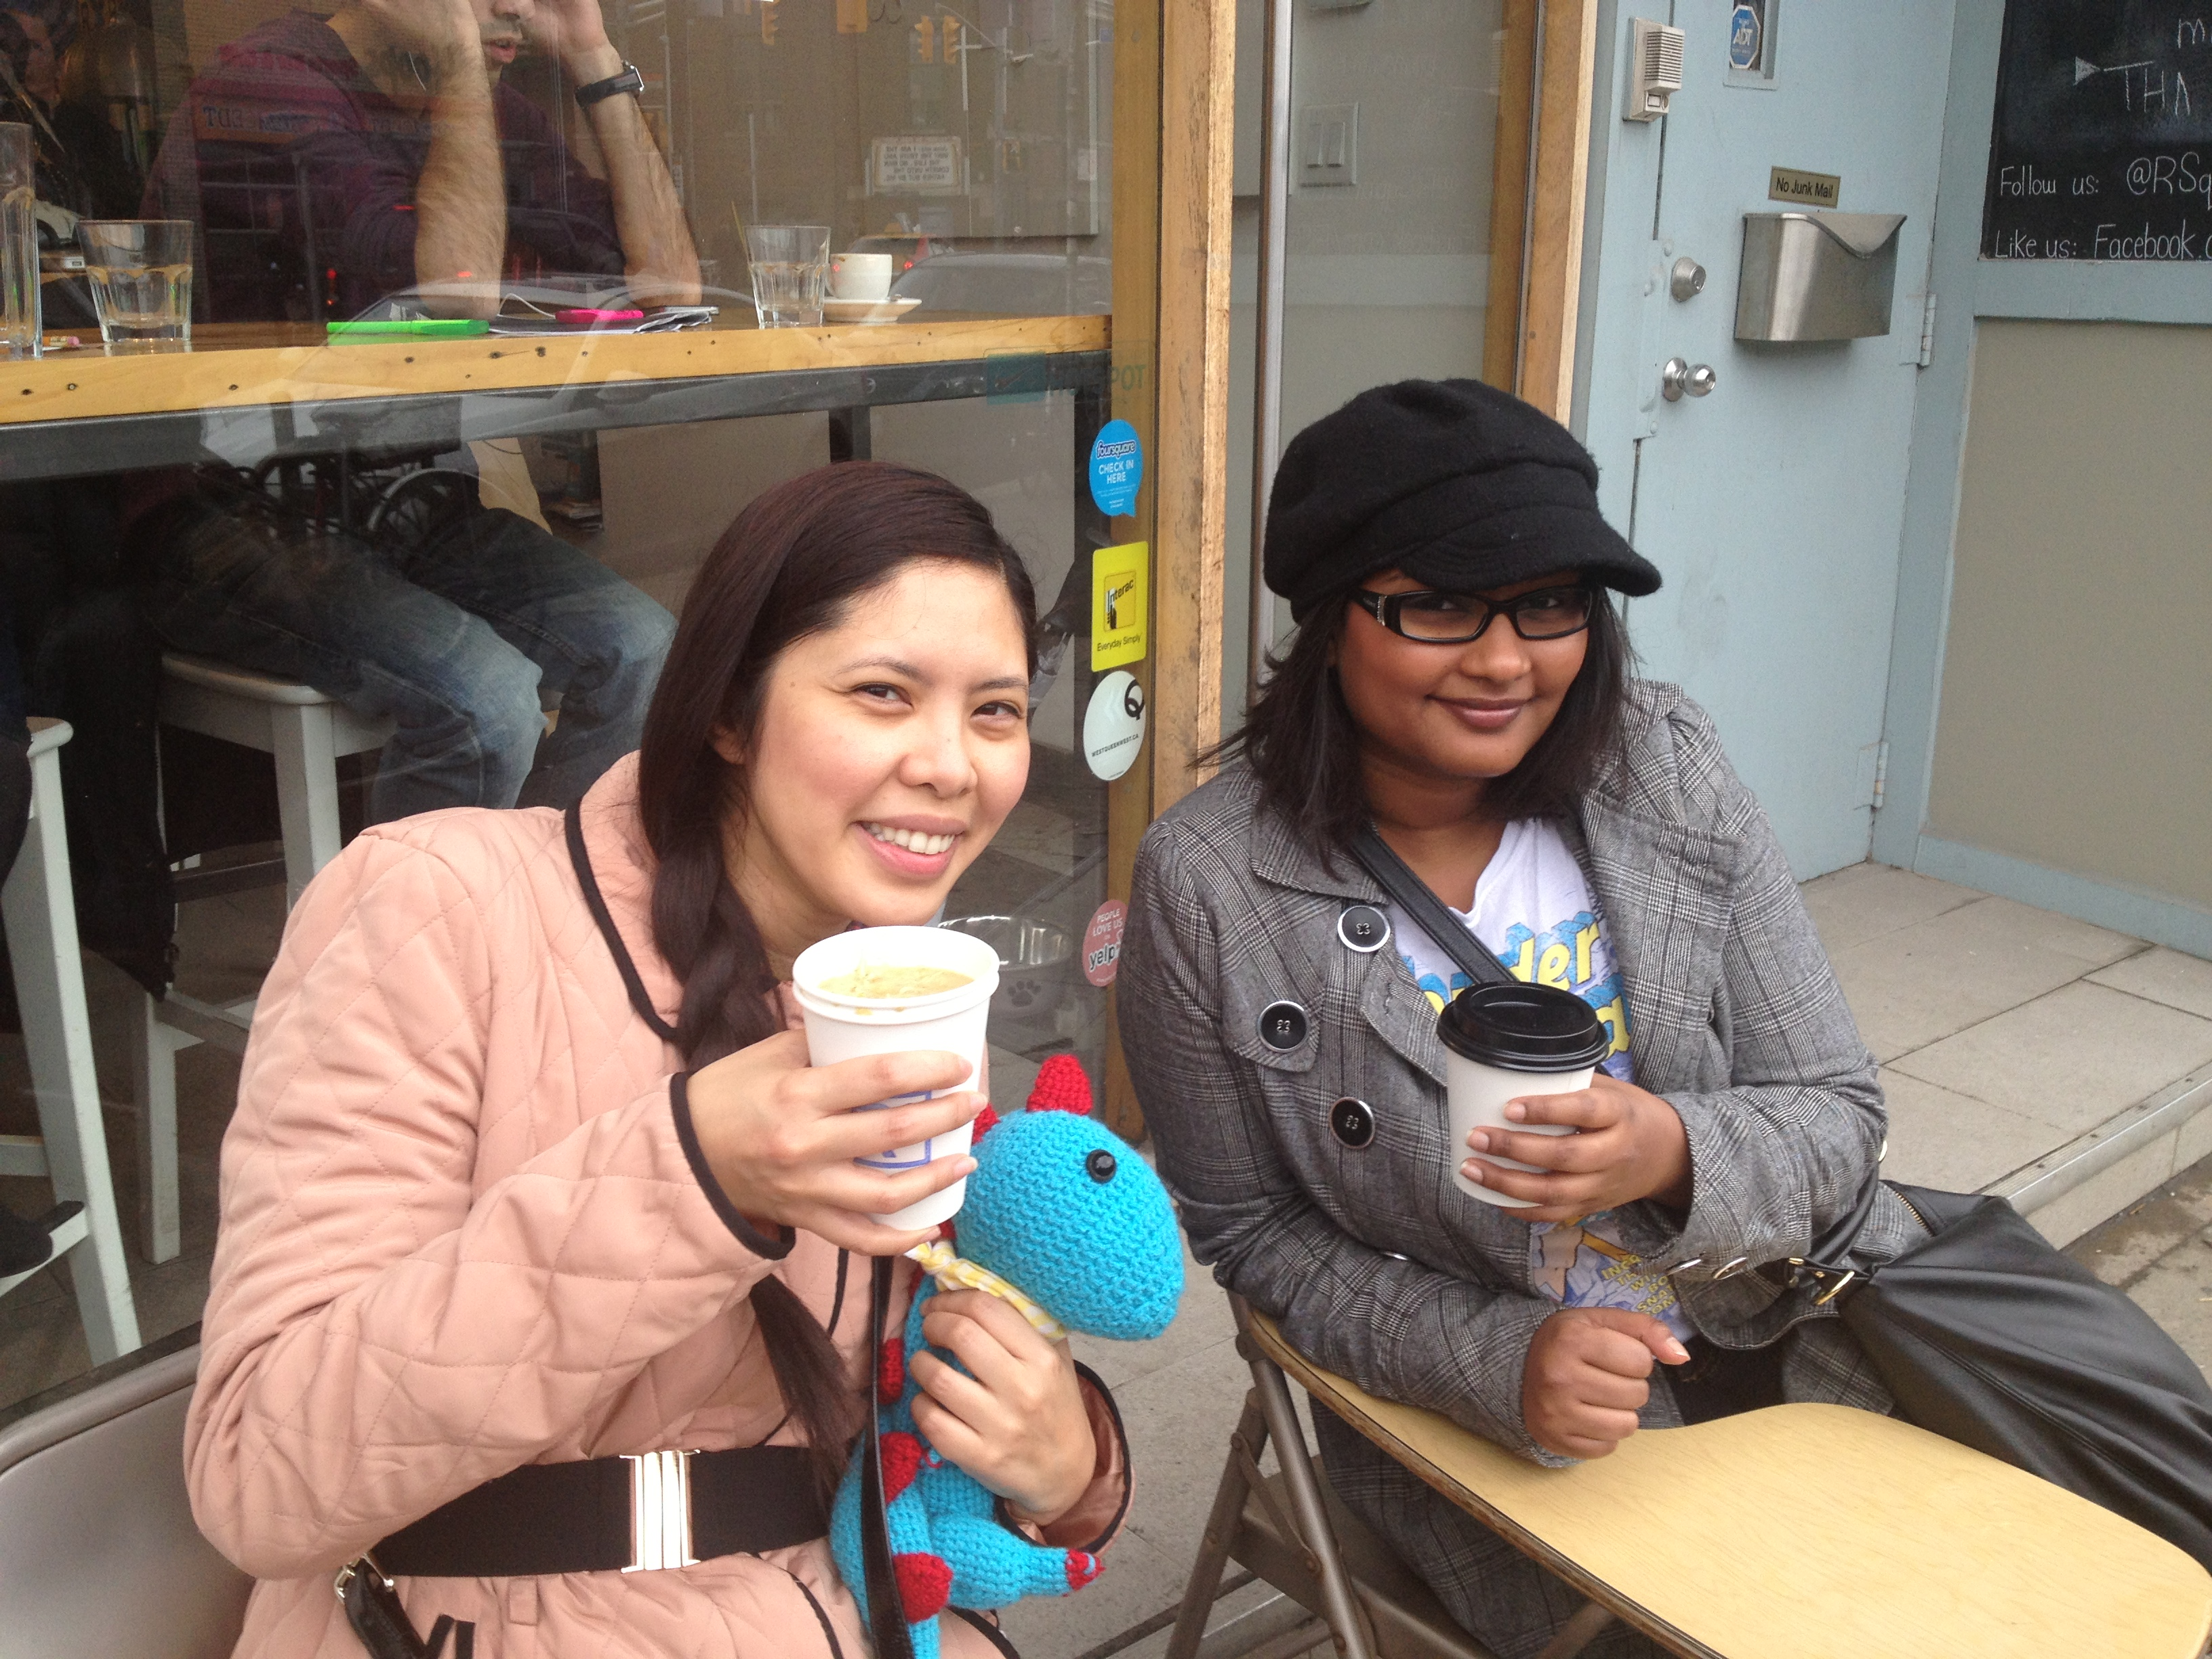 School's Out - Vanessa and I enjoying our soup and coffee at RSquared